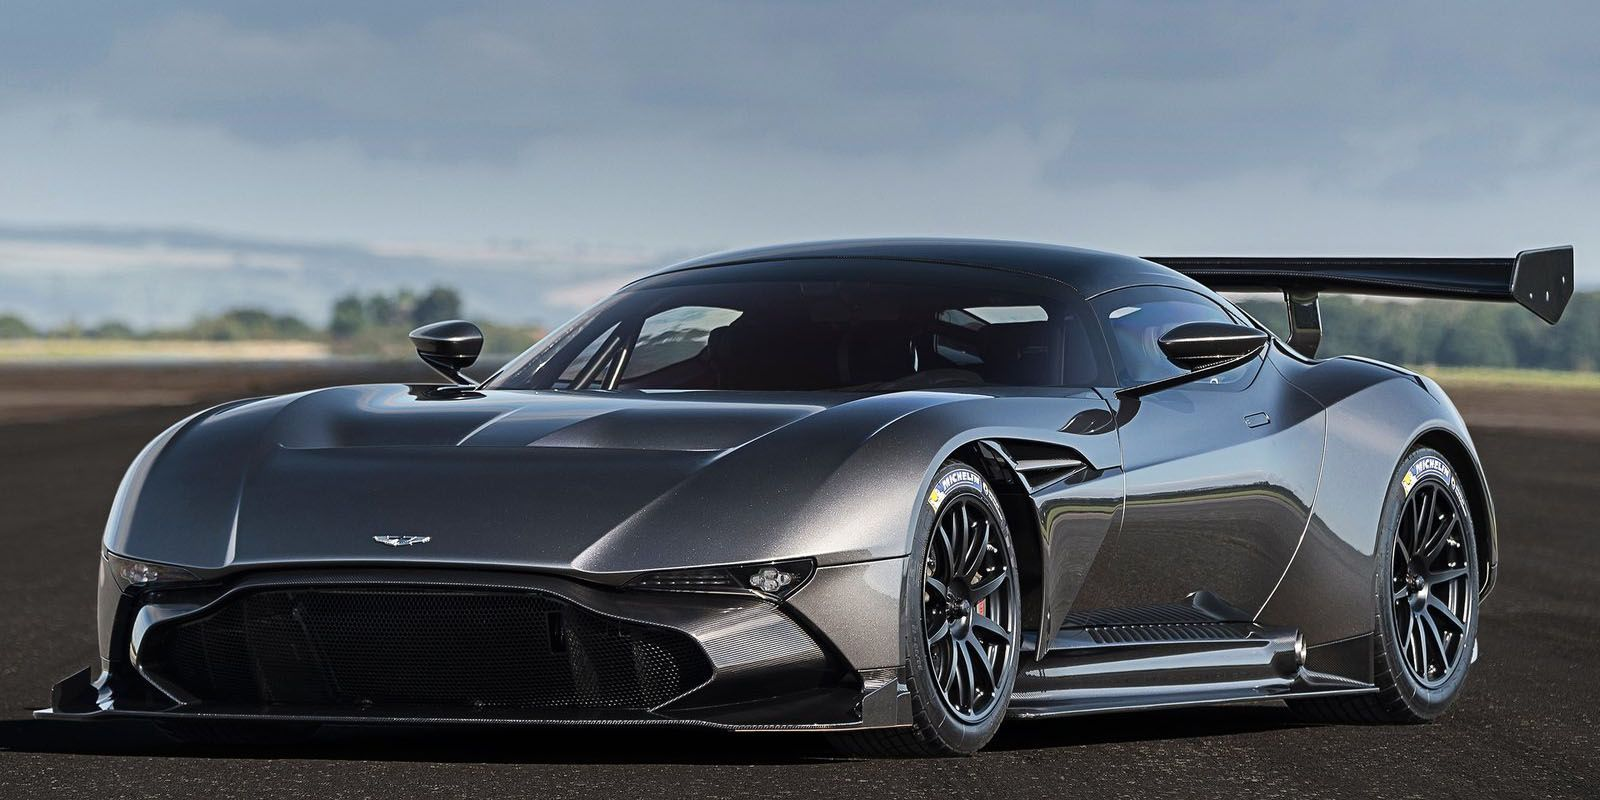 the aston martin vulcan wants to revolutionize how we do oil changes